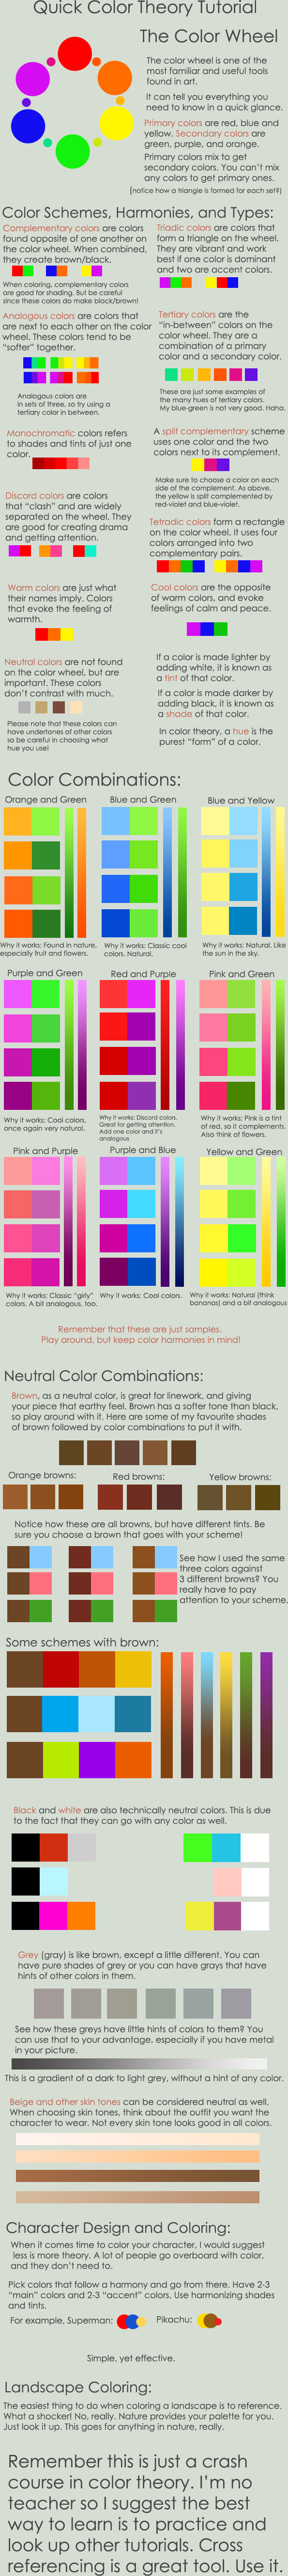 Color_Theory_Crash_Course_by_pronouncedyou